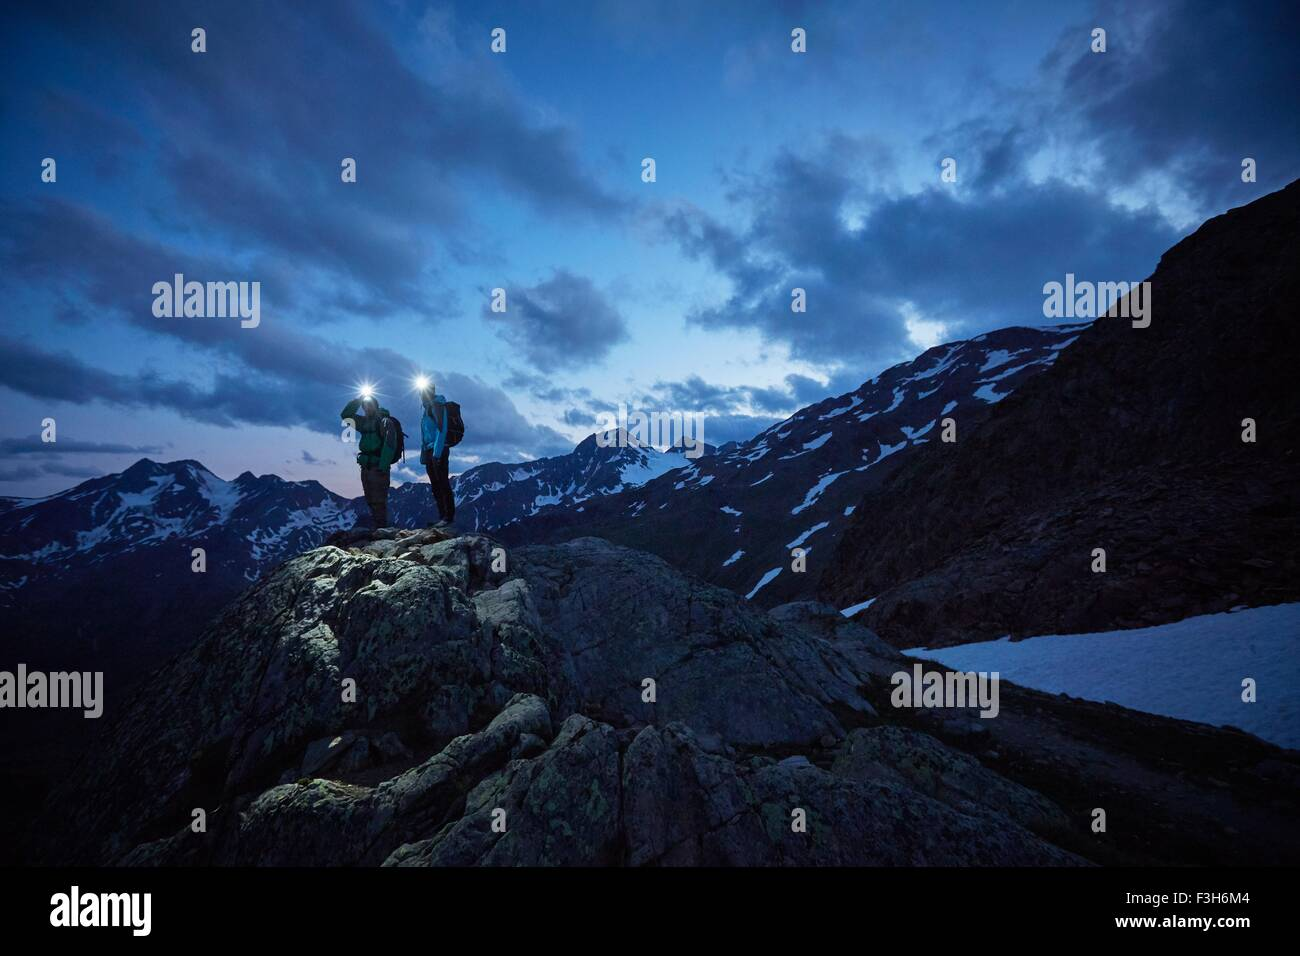 Young hiking couple looking out over rugged mountains at night, Val Senales Glacier, Val Senales, South Tyrol, Italy - Stock Image